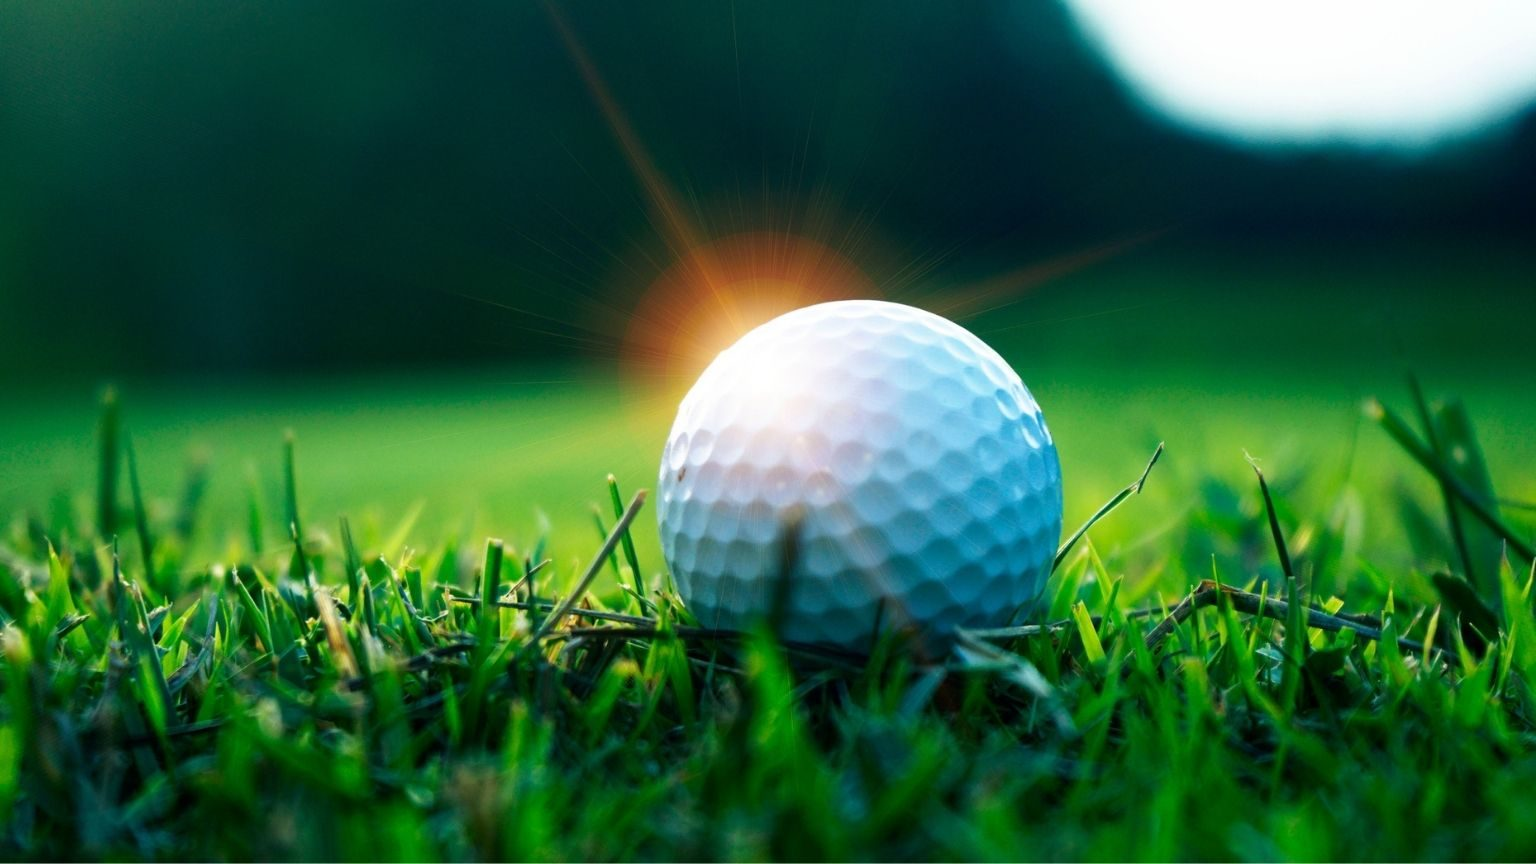 Close-Up Of Golf Ball On Course